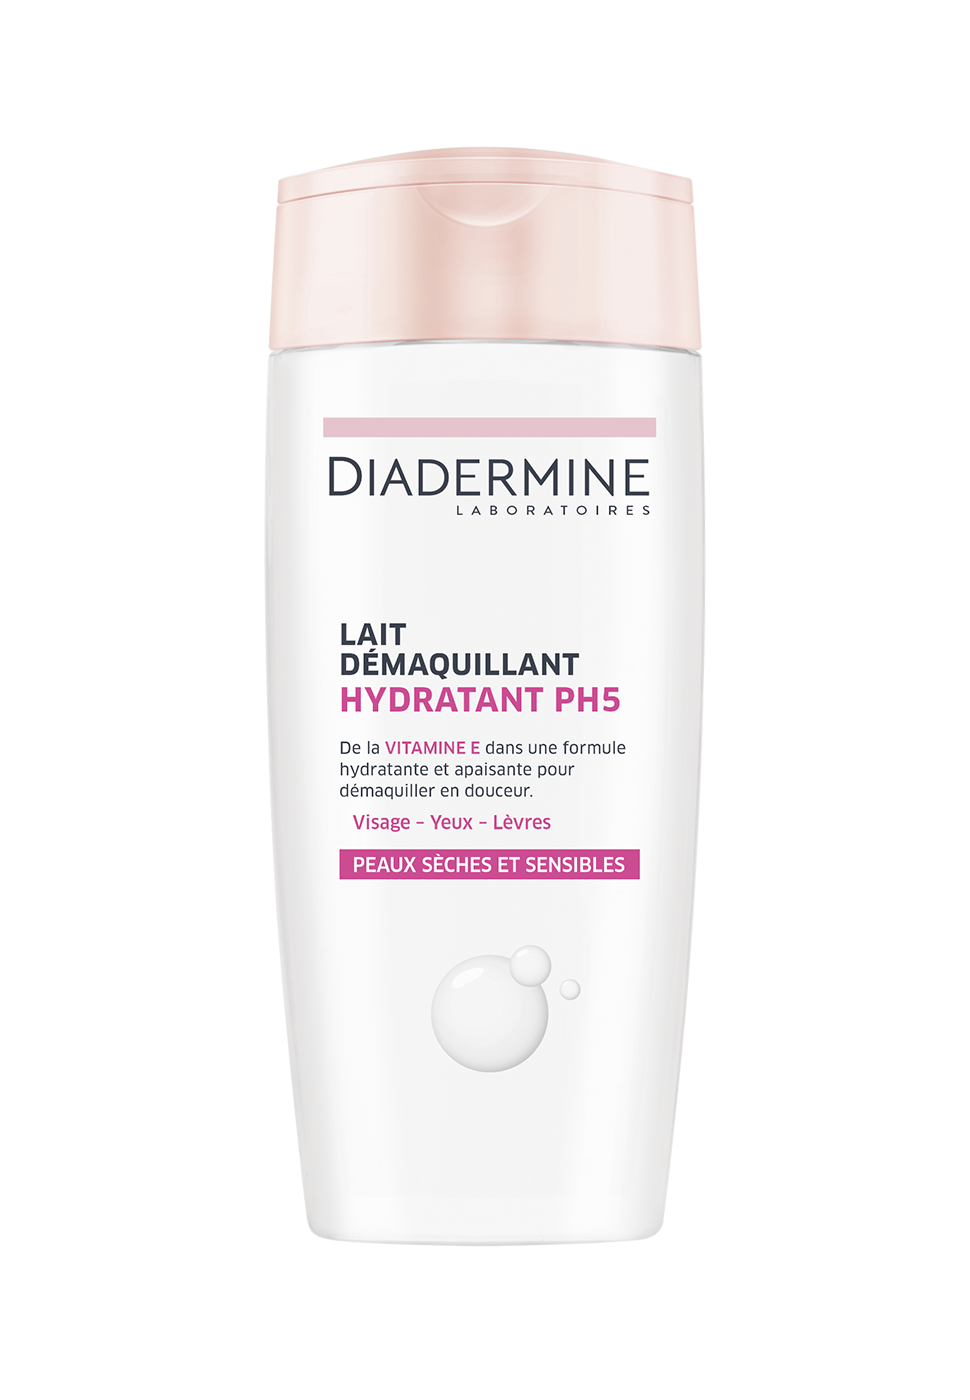 diadermine_essentiels_lait_demaquillant_hydratant_PH5